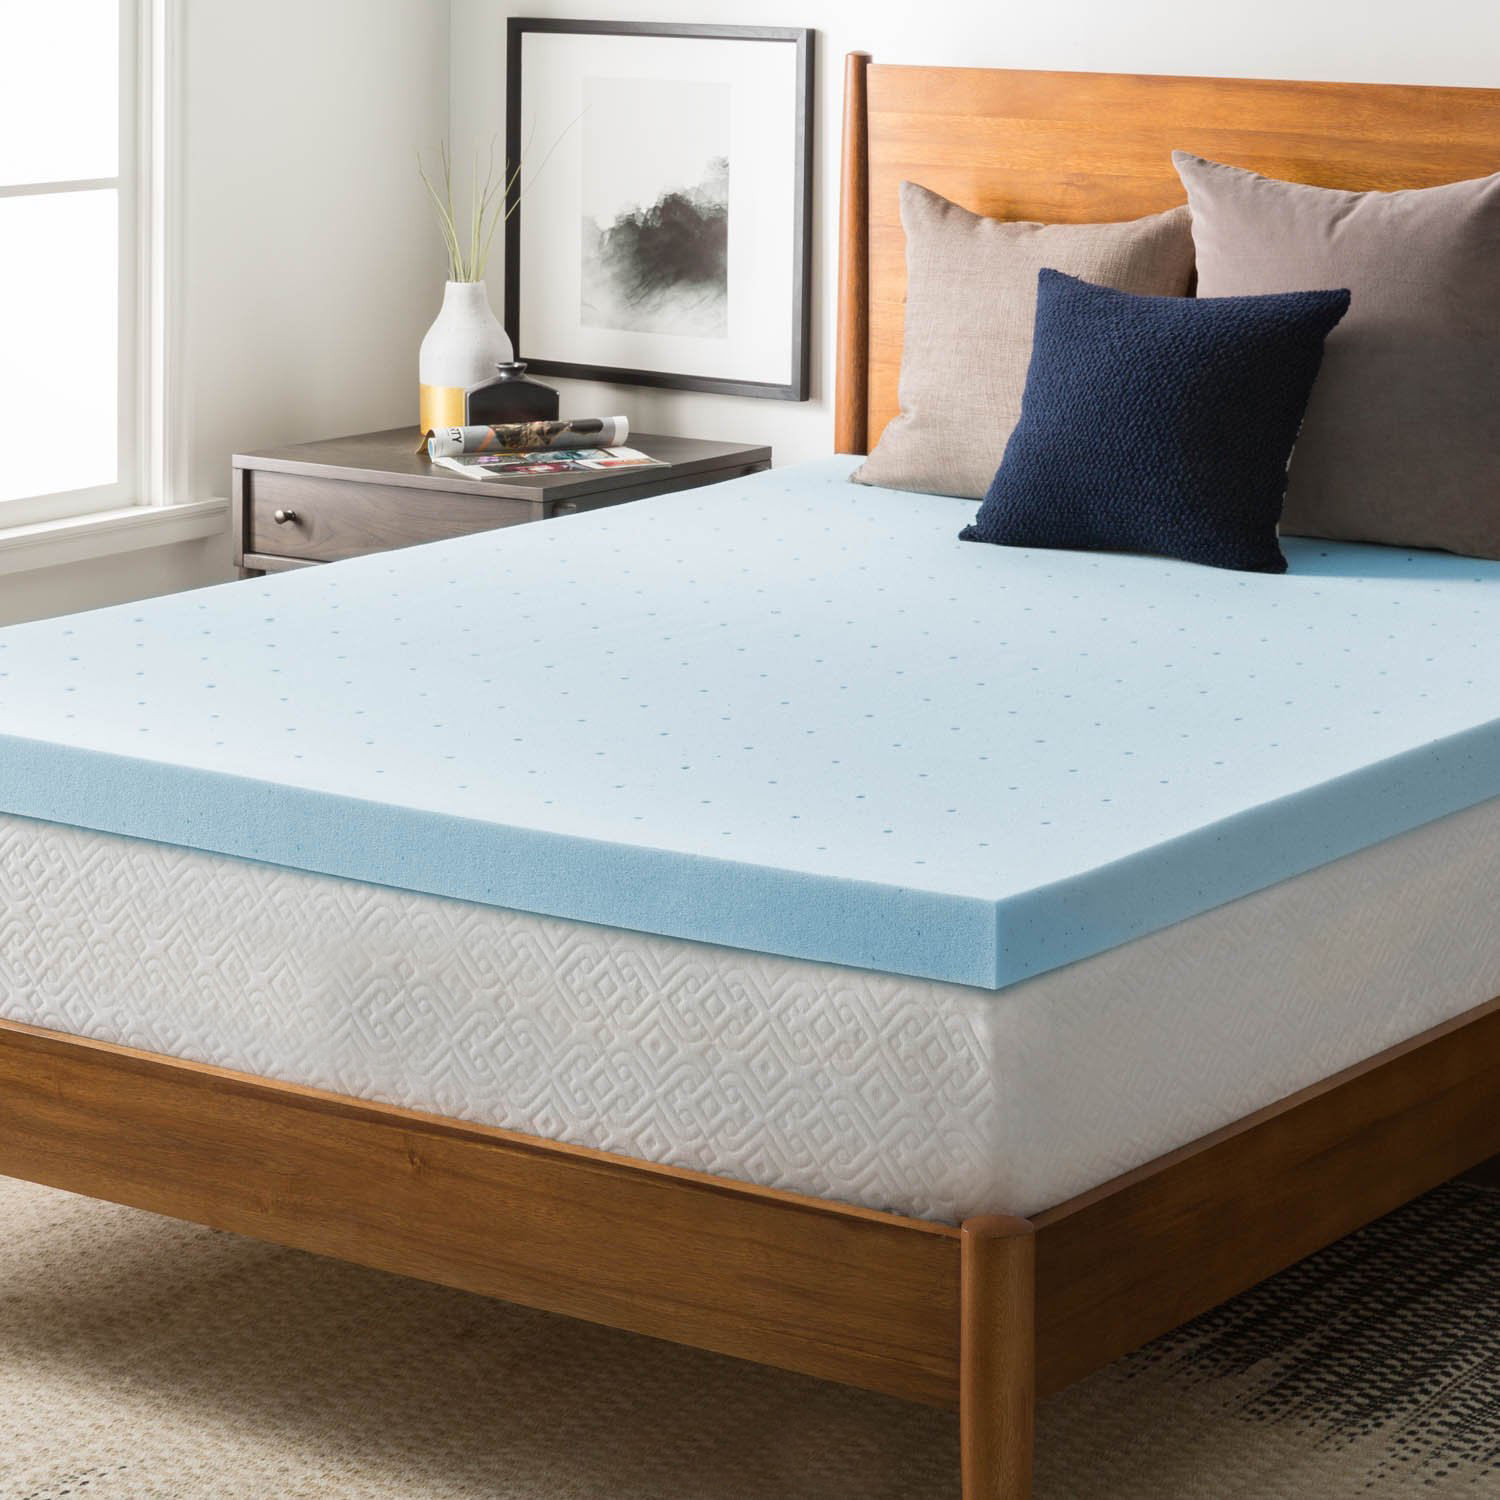 Factory price directly loading bamboo cover memory foam mattress topper gel mattress topper for bedroom furniture